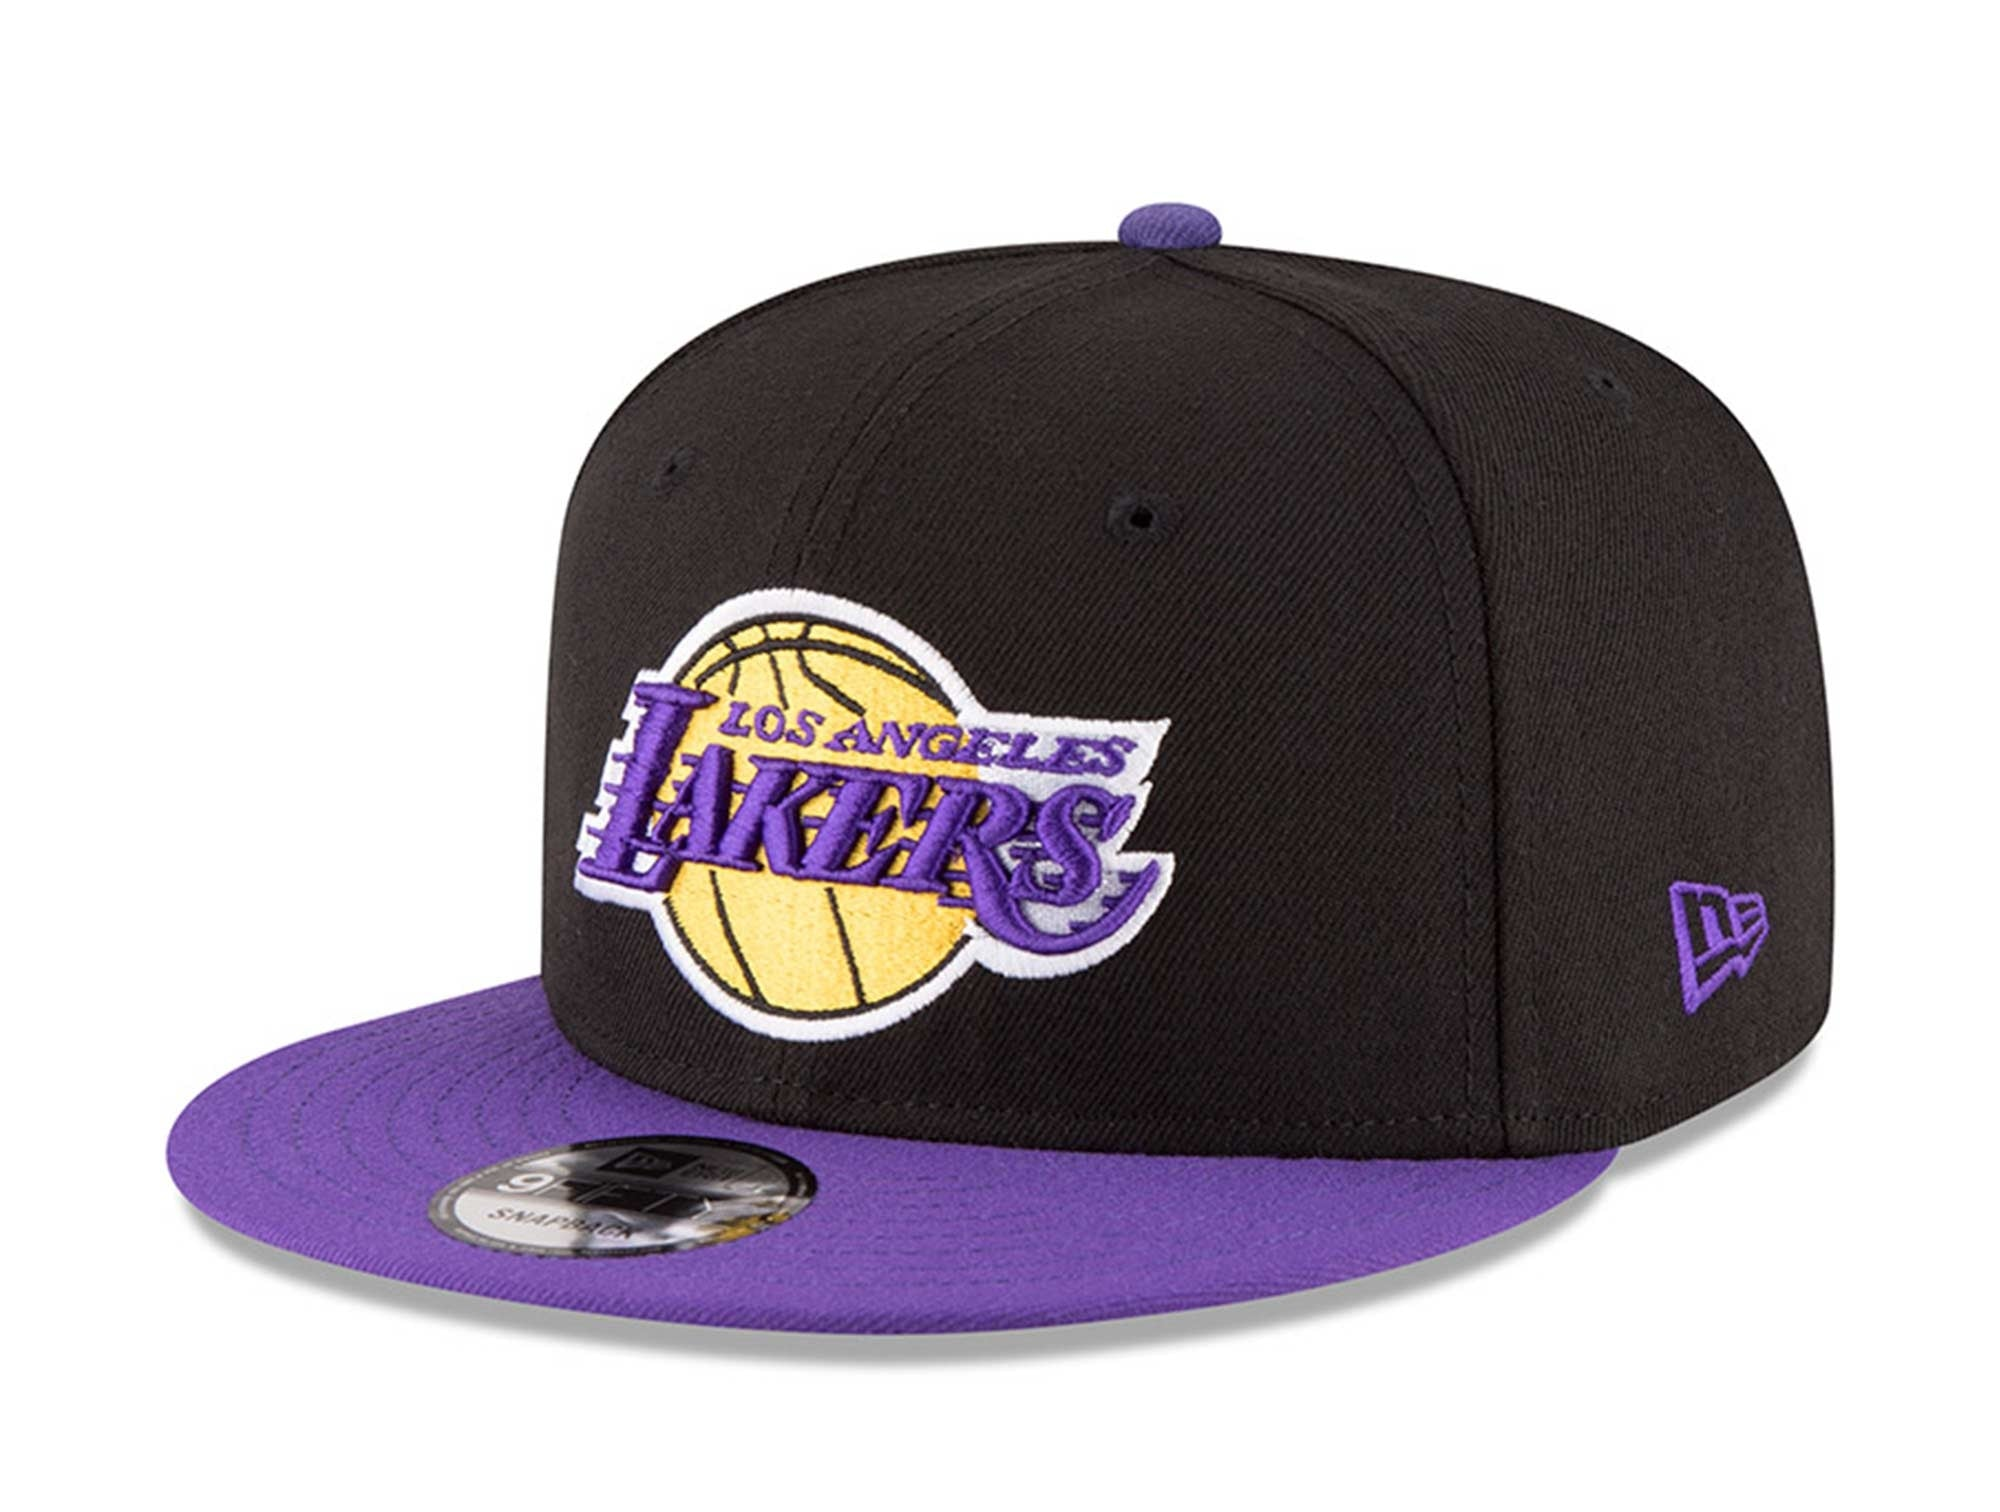 Jockey New Era Nba 9Fifty Loslak Unisex